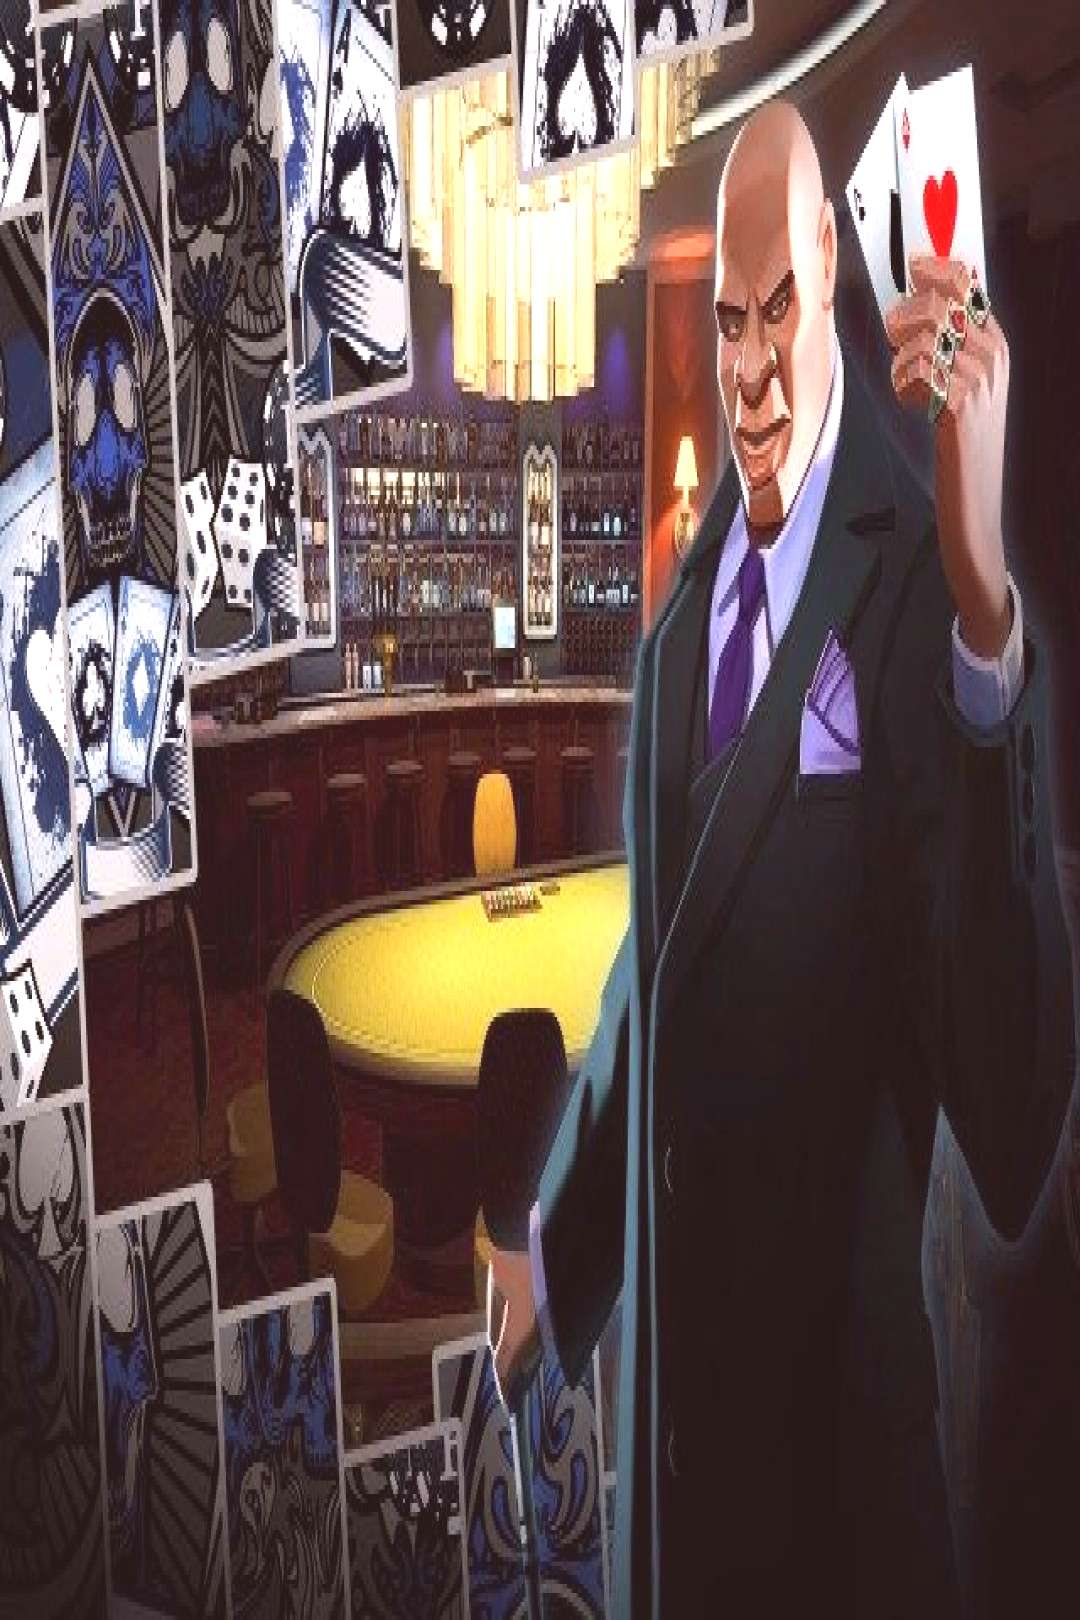 T Top 3 casino games for consoles The success of best online casinos brands has made it possible f